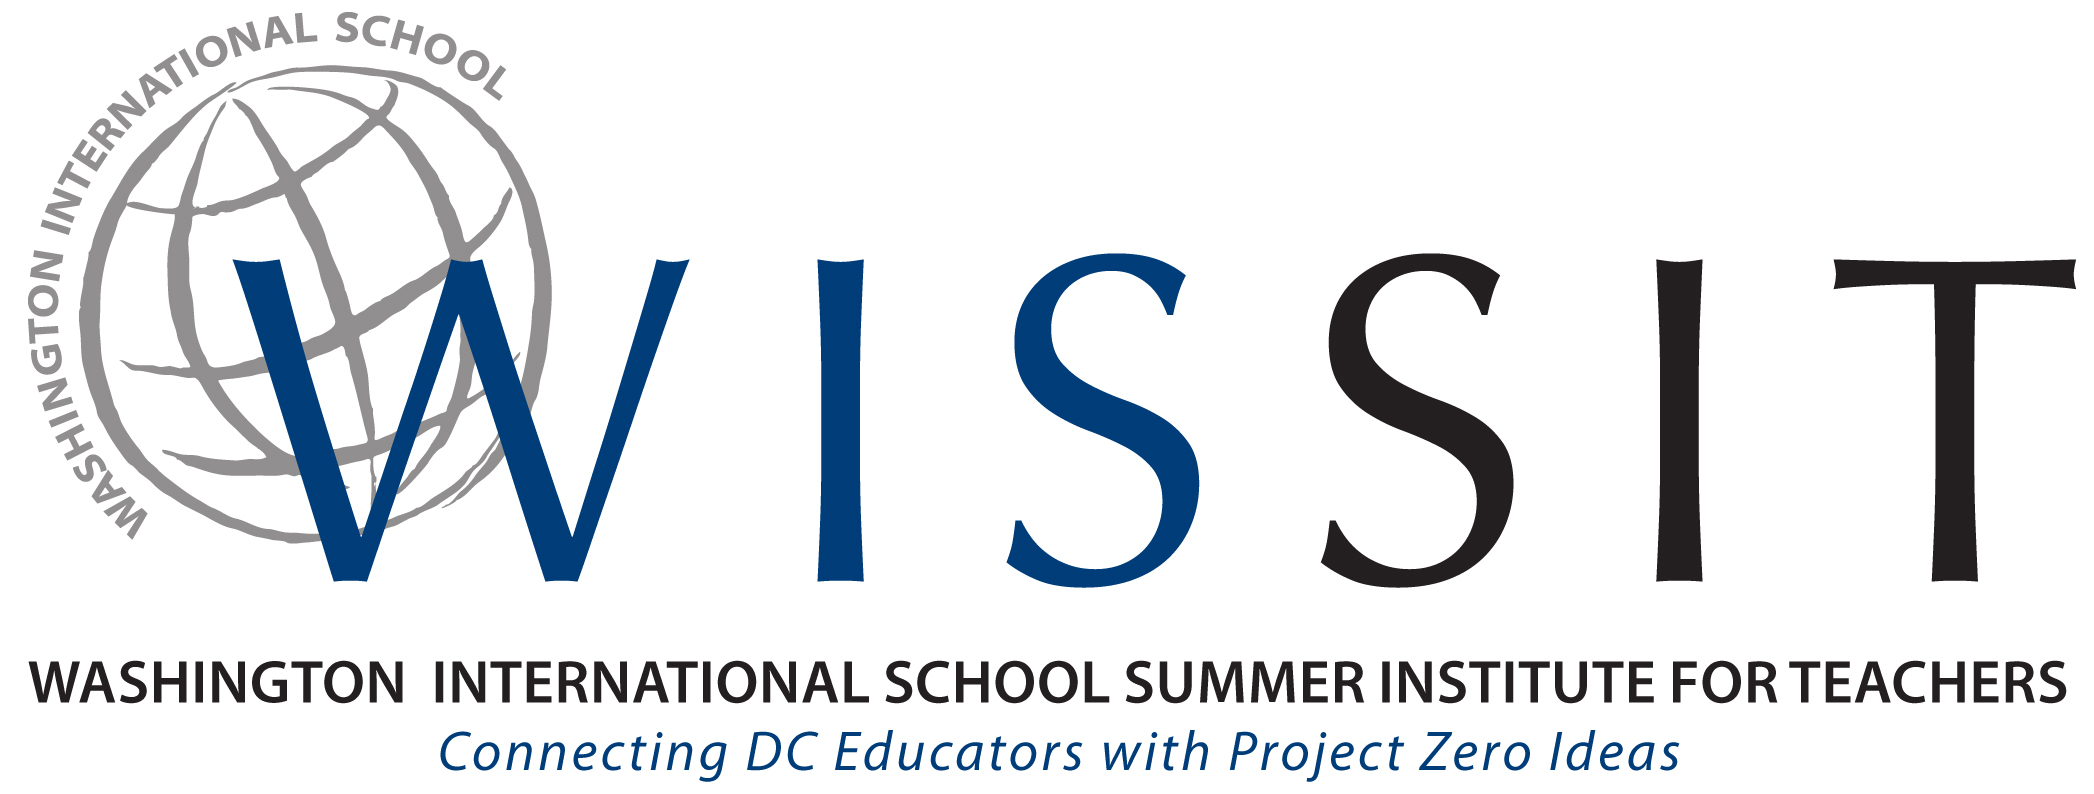 WISSIT 2017: Connecting DC Educators with Project Zero Ideas